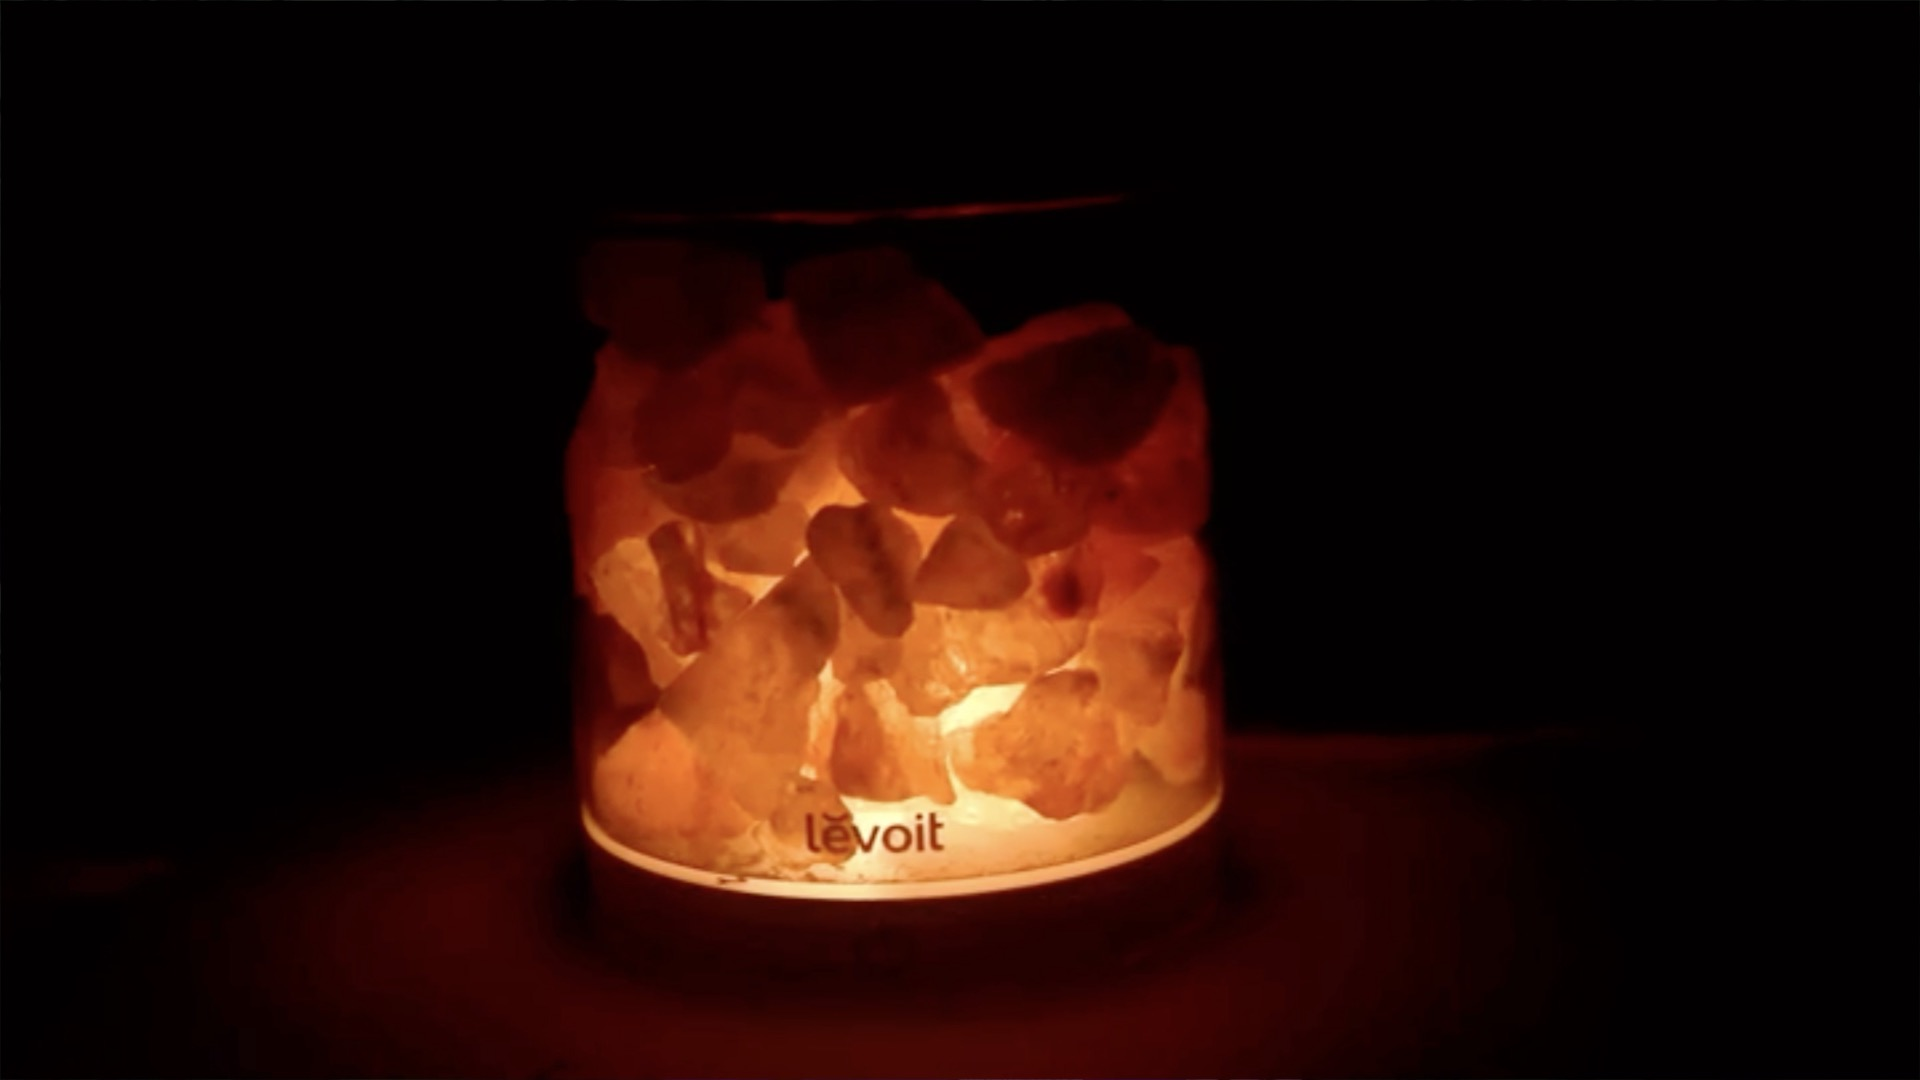 Salt Lamps And Allergies : Can This USD 25 Lamp Fight Allergies And Purify The Air? WFMYNEWS2.com